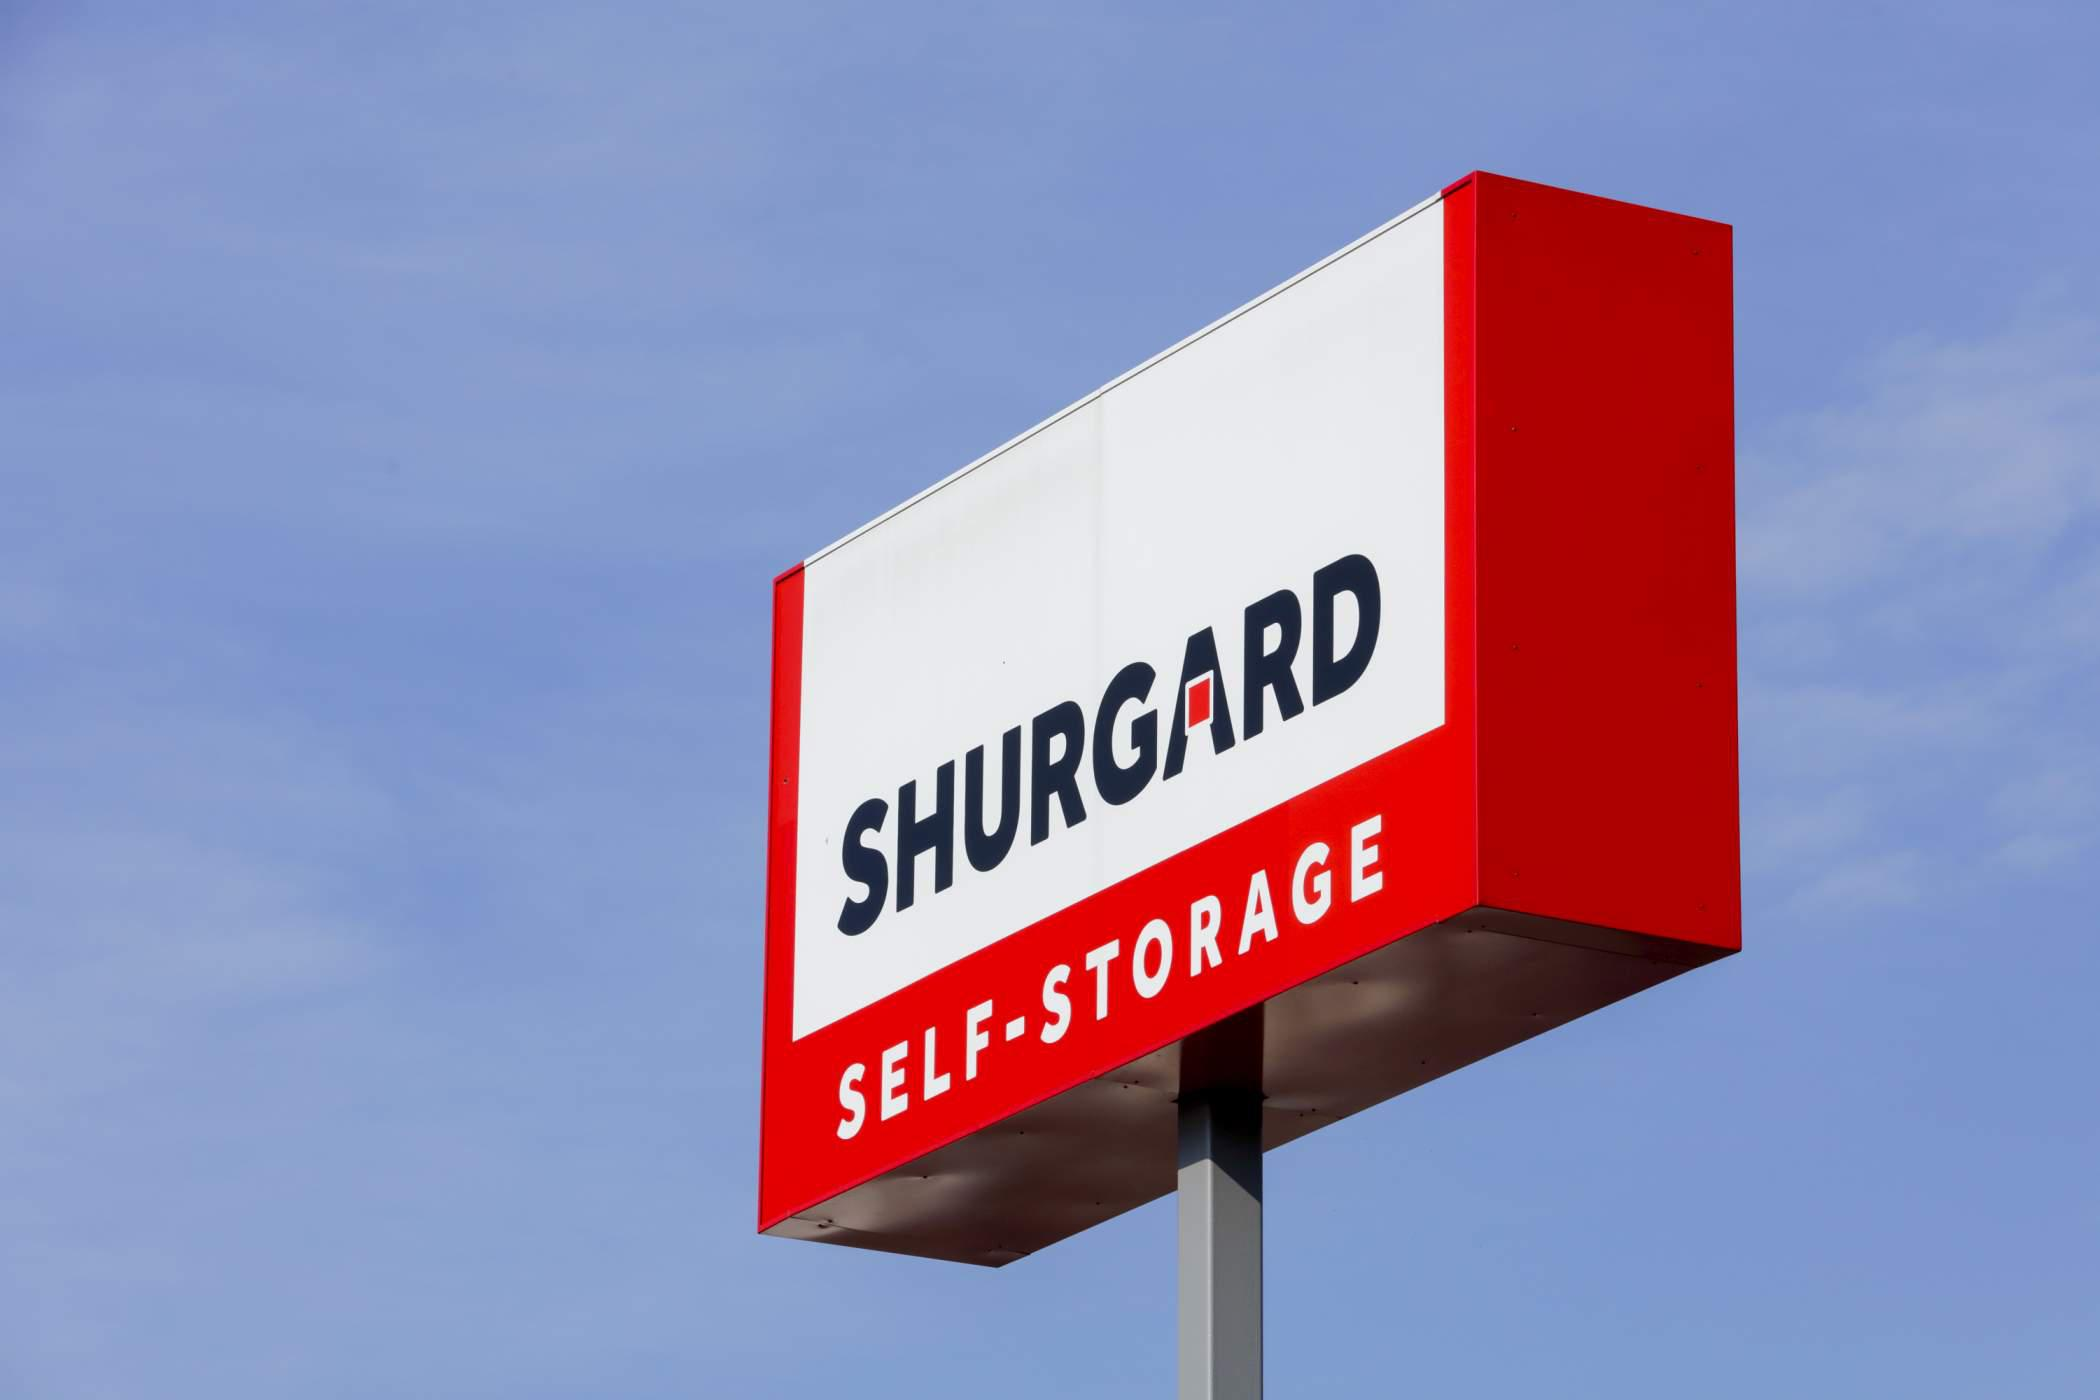 Shurgard Self-Storage Overijse